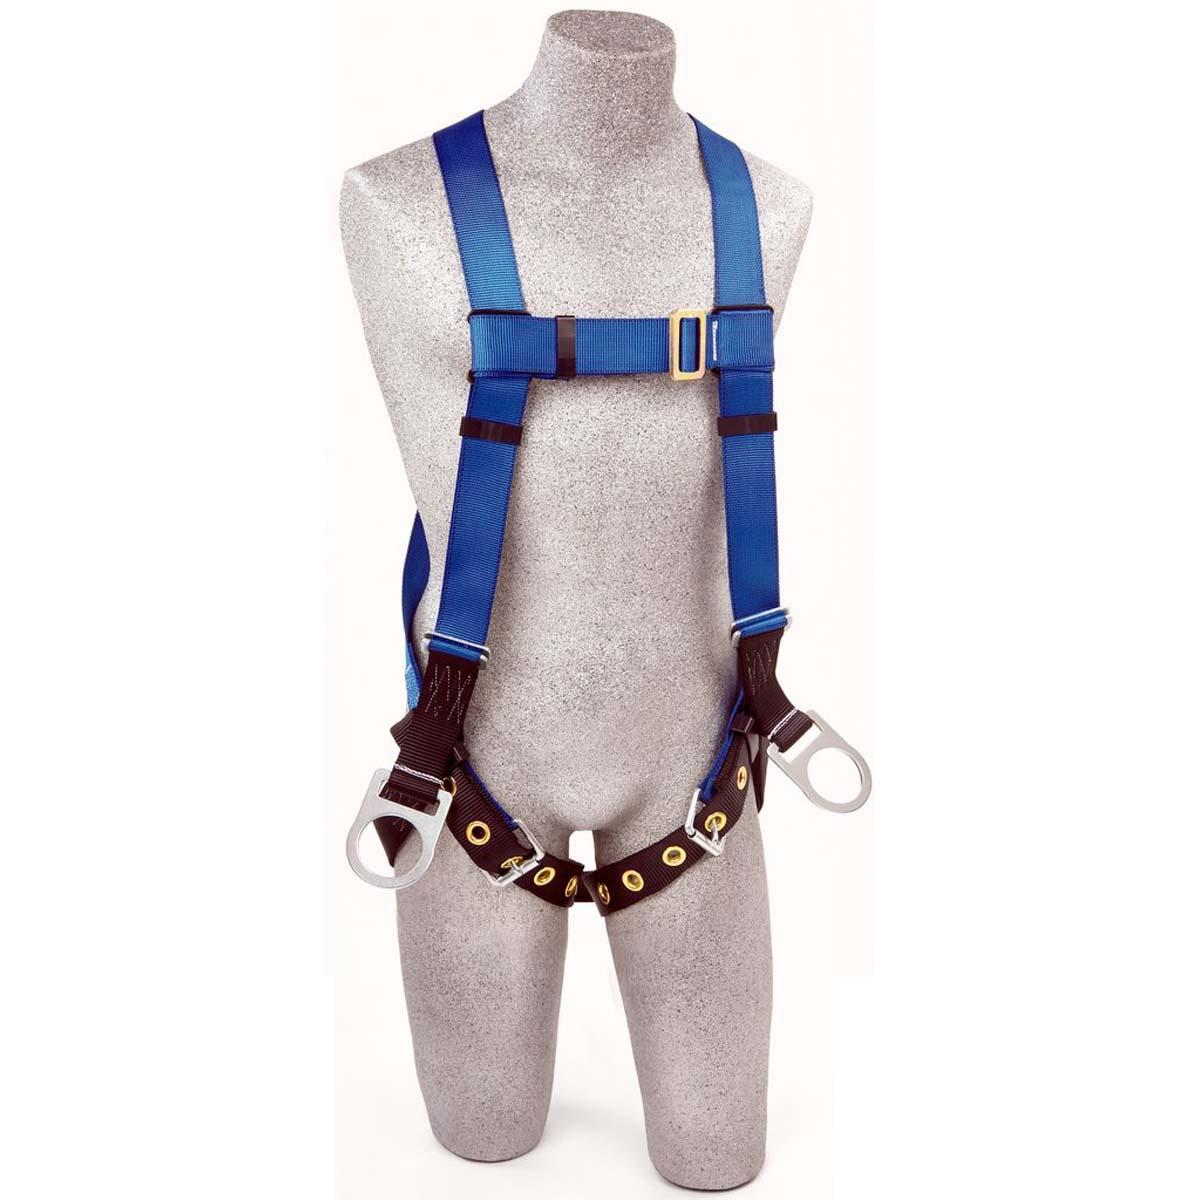 3M PROTECTA Vest-Style Positioning Harness AB17560-XL, Blue, X-Large, 1 EA